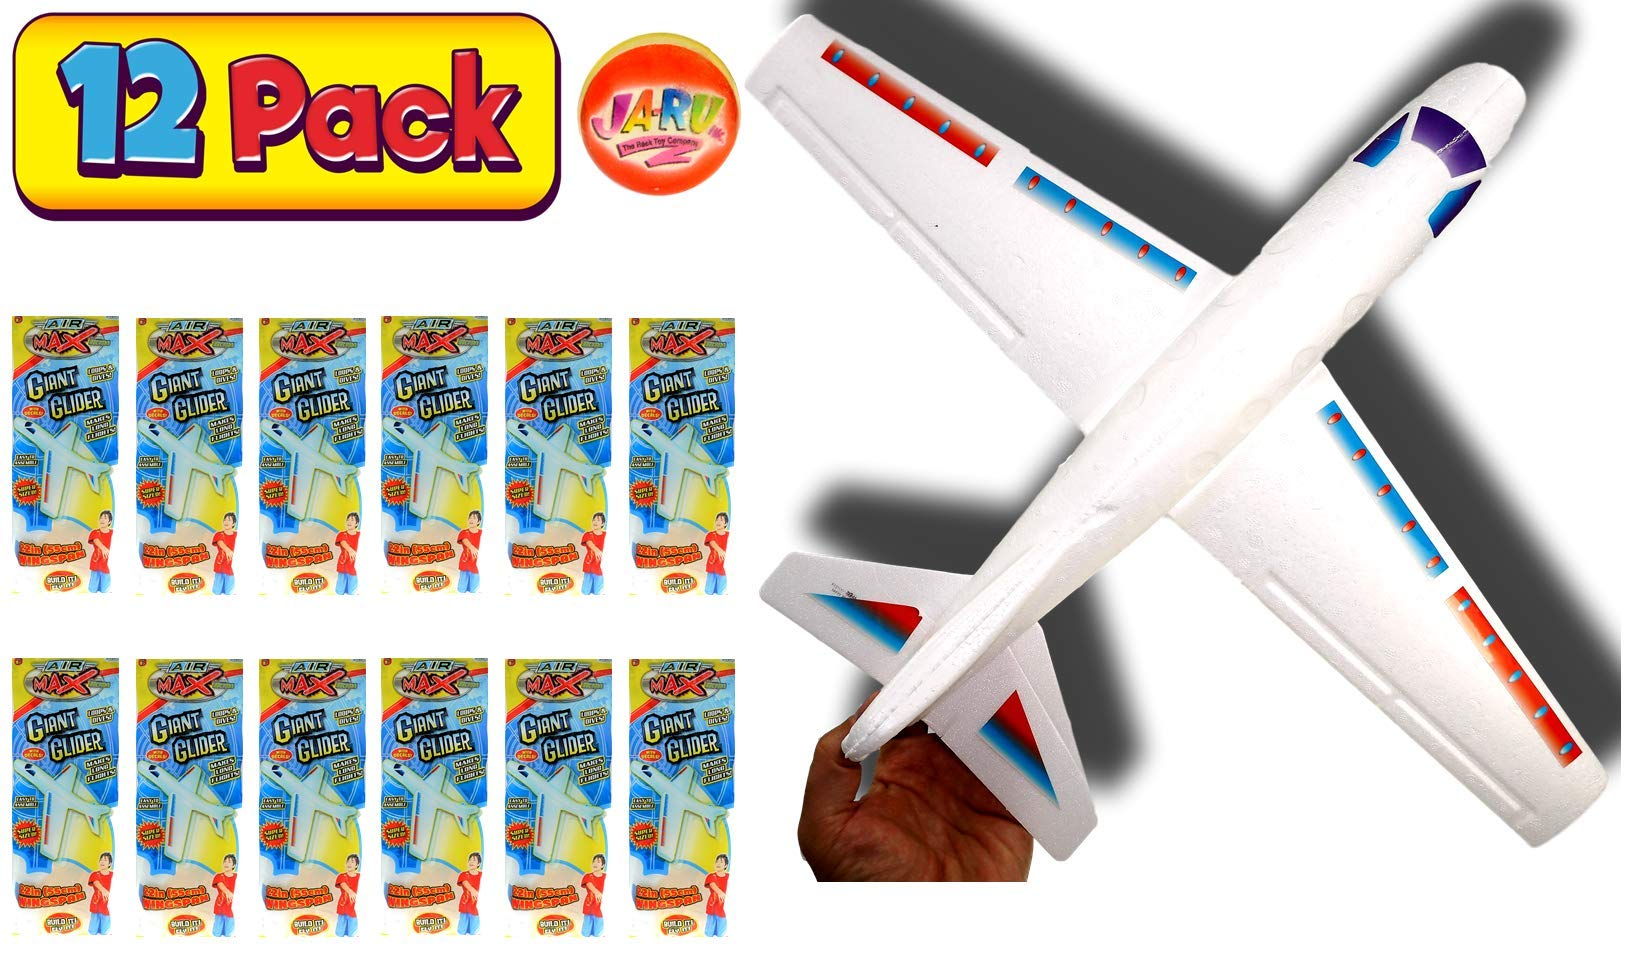 Giant Airplan2GoodShop | Kids Fying Toe Glider by y Build It, Throw It and Watch It Glide Hours of Outdoor Fun. Pack of 12 | Item #1030 by 2GoodShop